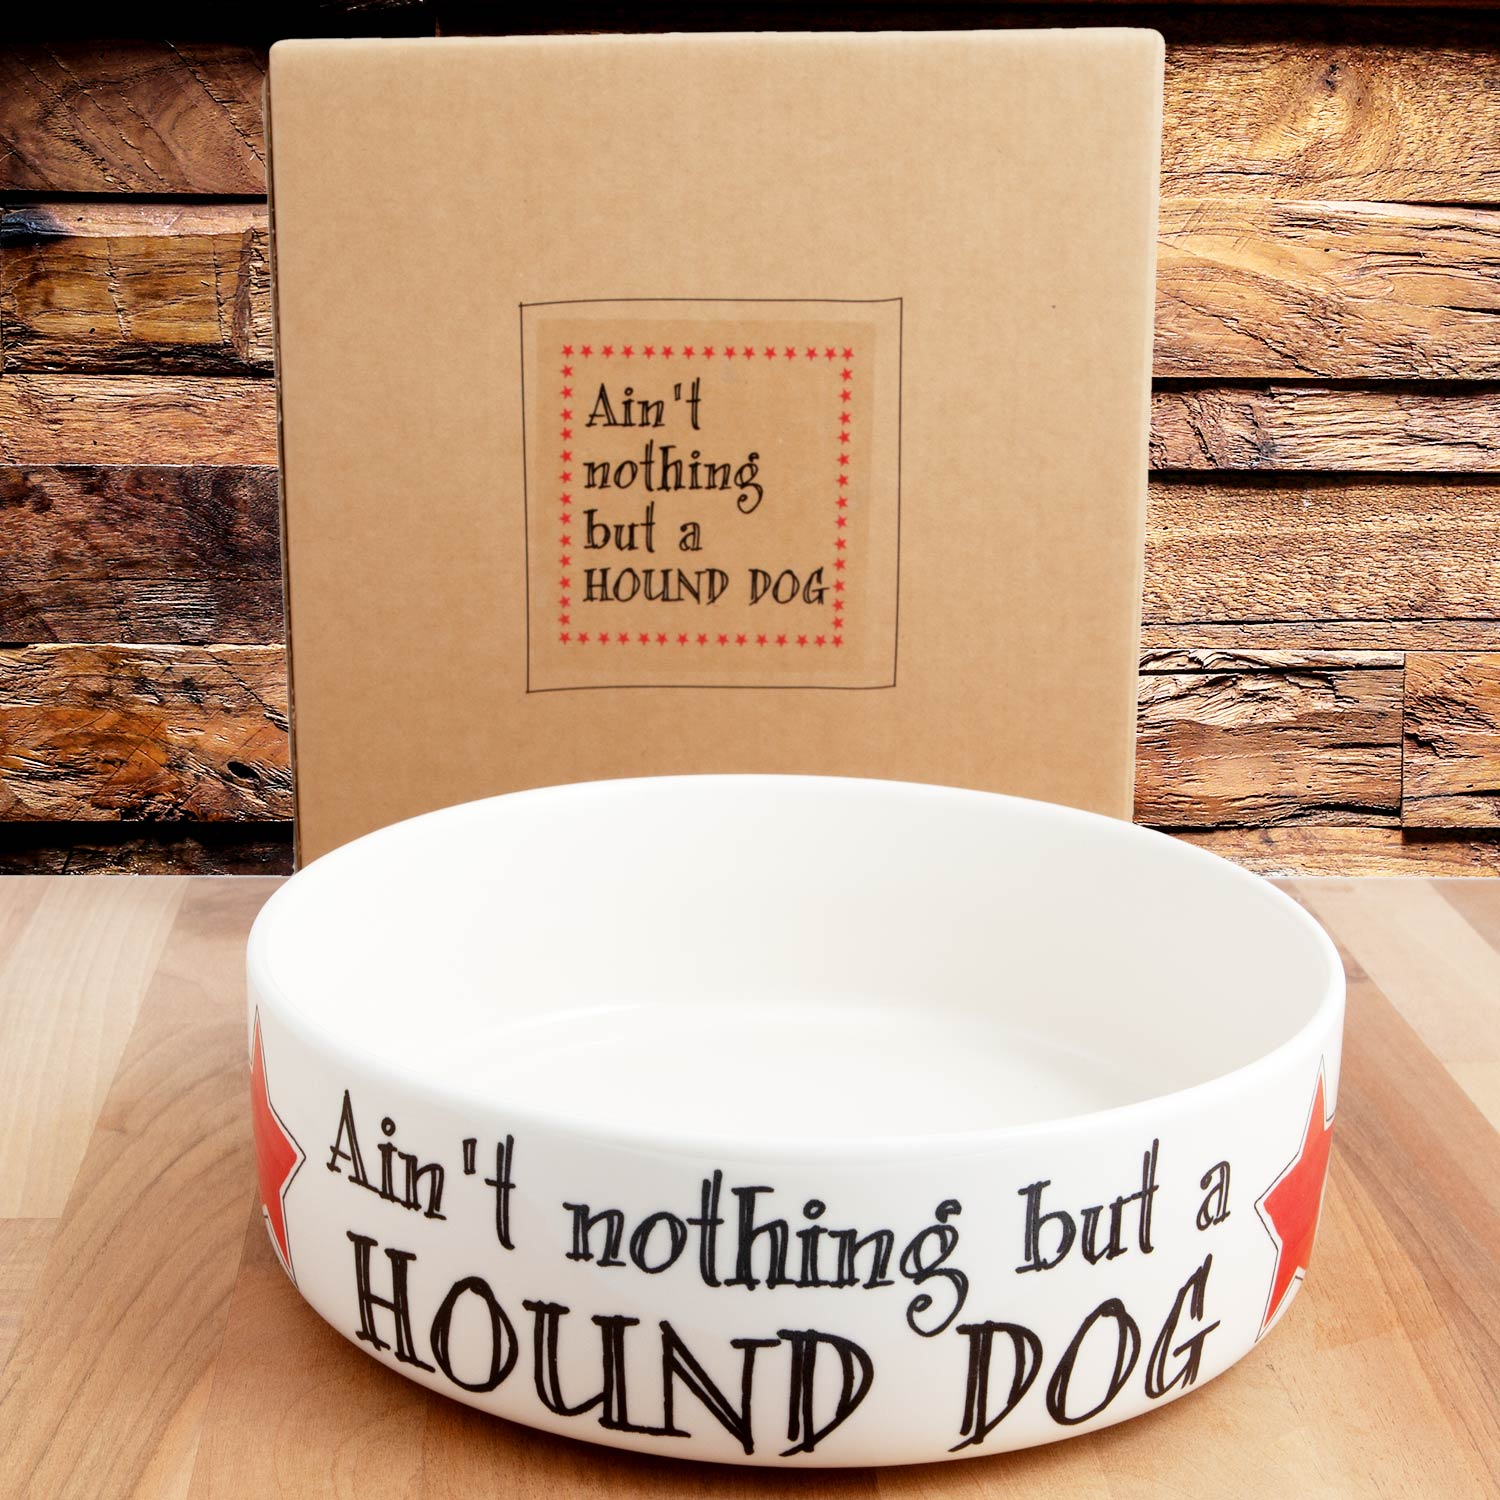 Dog Lover Gifts available at Dog Krazy Gifts – Ain't nothing but a Hound Dog earthenware dog bowl in 2 sizes - part of the Sweet William Designs range available from DogKrazyGifts.co.uk